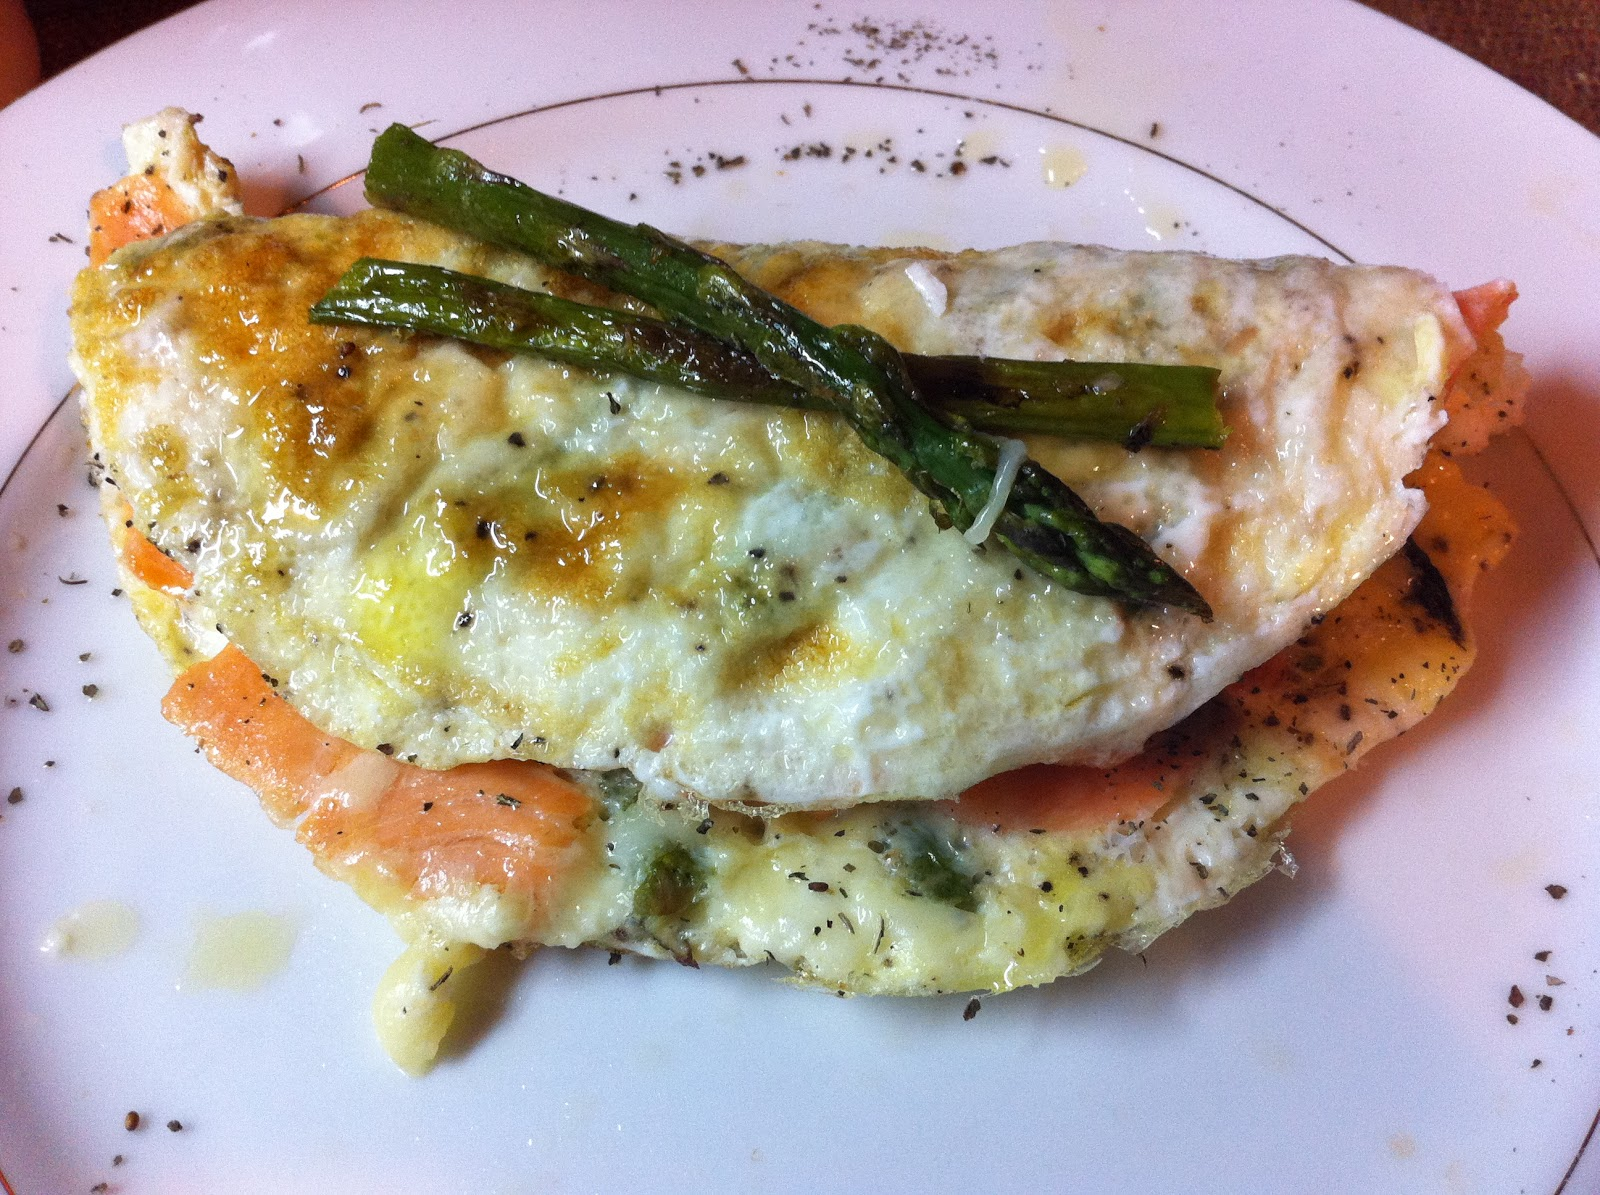 Skinny Simple Recipes: Skinny Smoked Salmon Asparagus Omelette